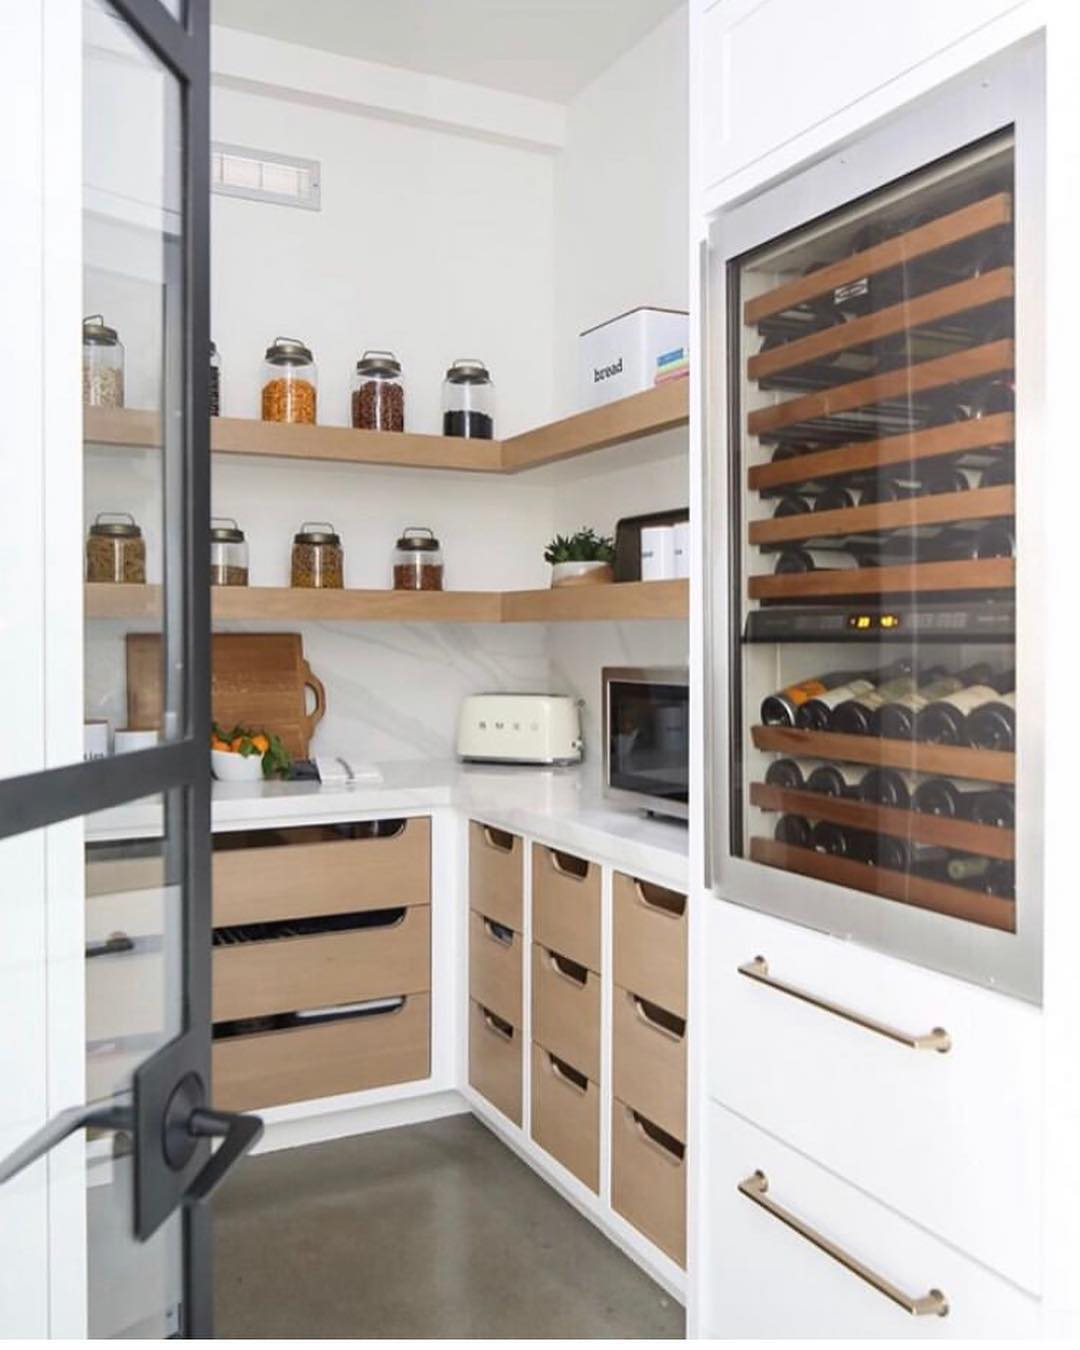 Friday Inspiration: One Butler's Pantry Please & Thank You!